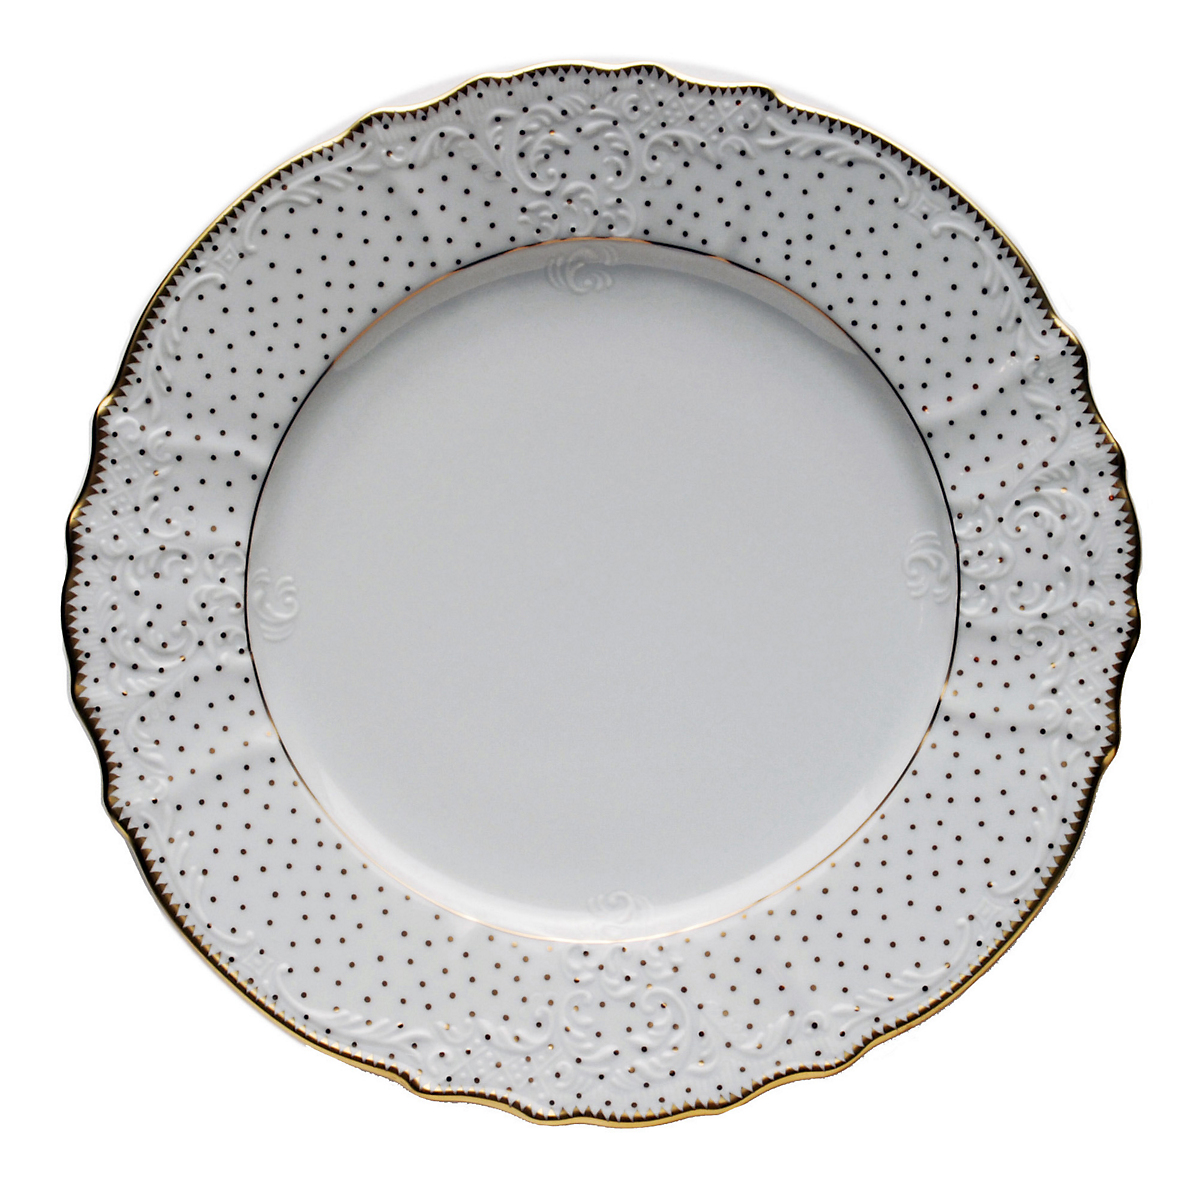 Anna Weatherley Simply Anna Polka Dot Dinner Plate